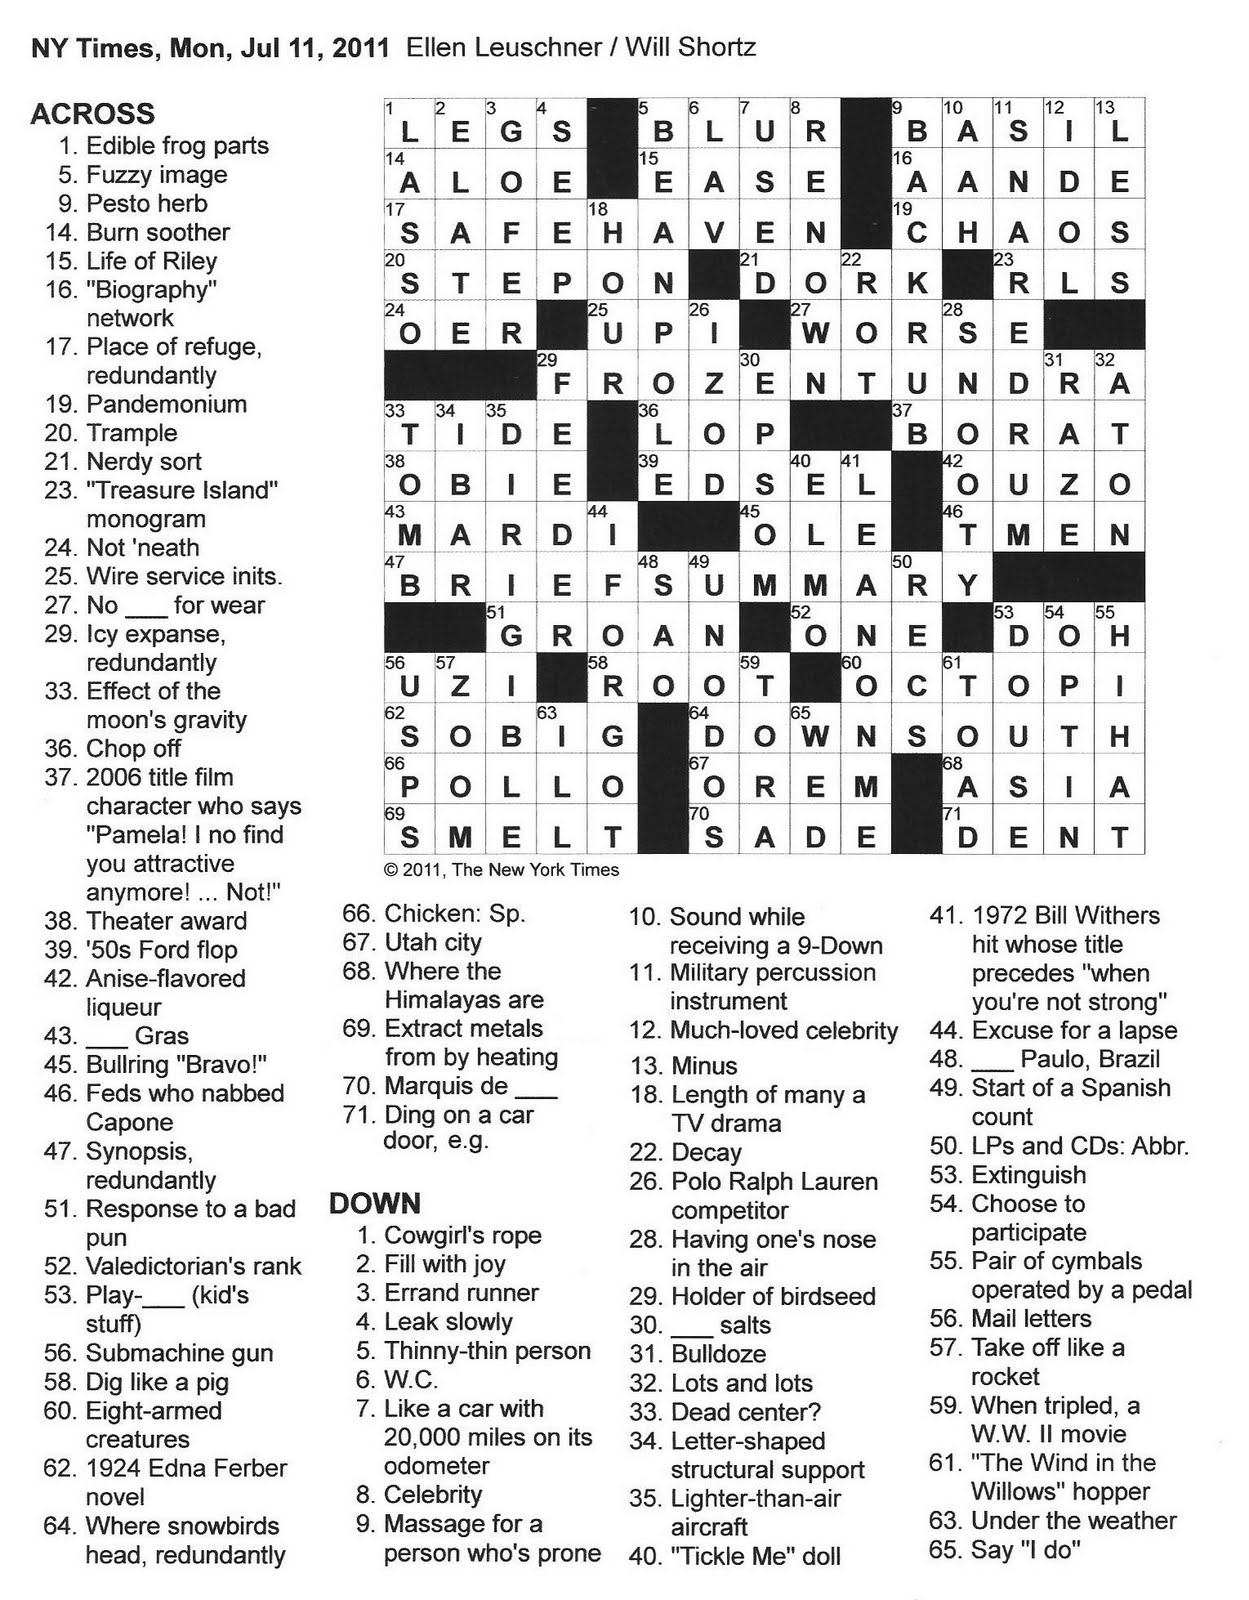 Worksheet Percussion Instruments Crossword the new york times crossword in gothic 07 11 monday click on image to enlarge